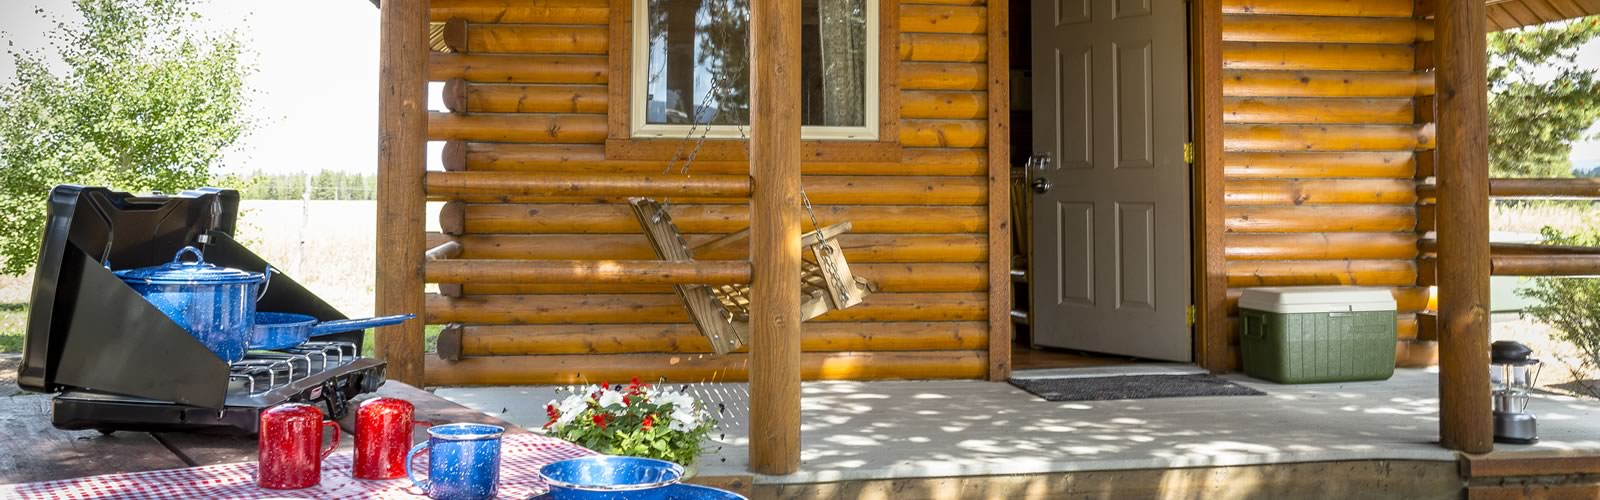 Cooking gear - there's nothing like hot dogs roasted over a campfire - just add your own roasting forks. Some of our camping cabins include barbecues, or you can pack your own portable grill